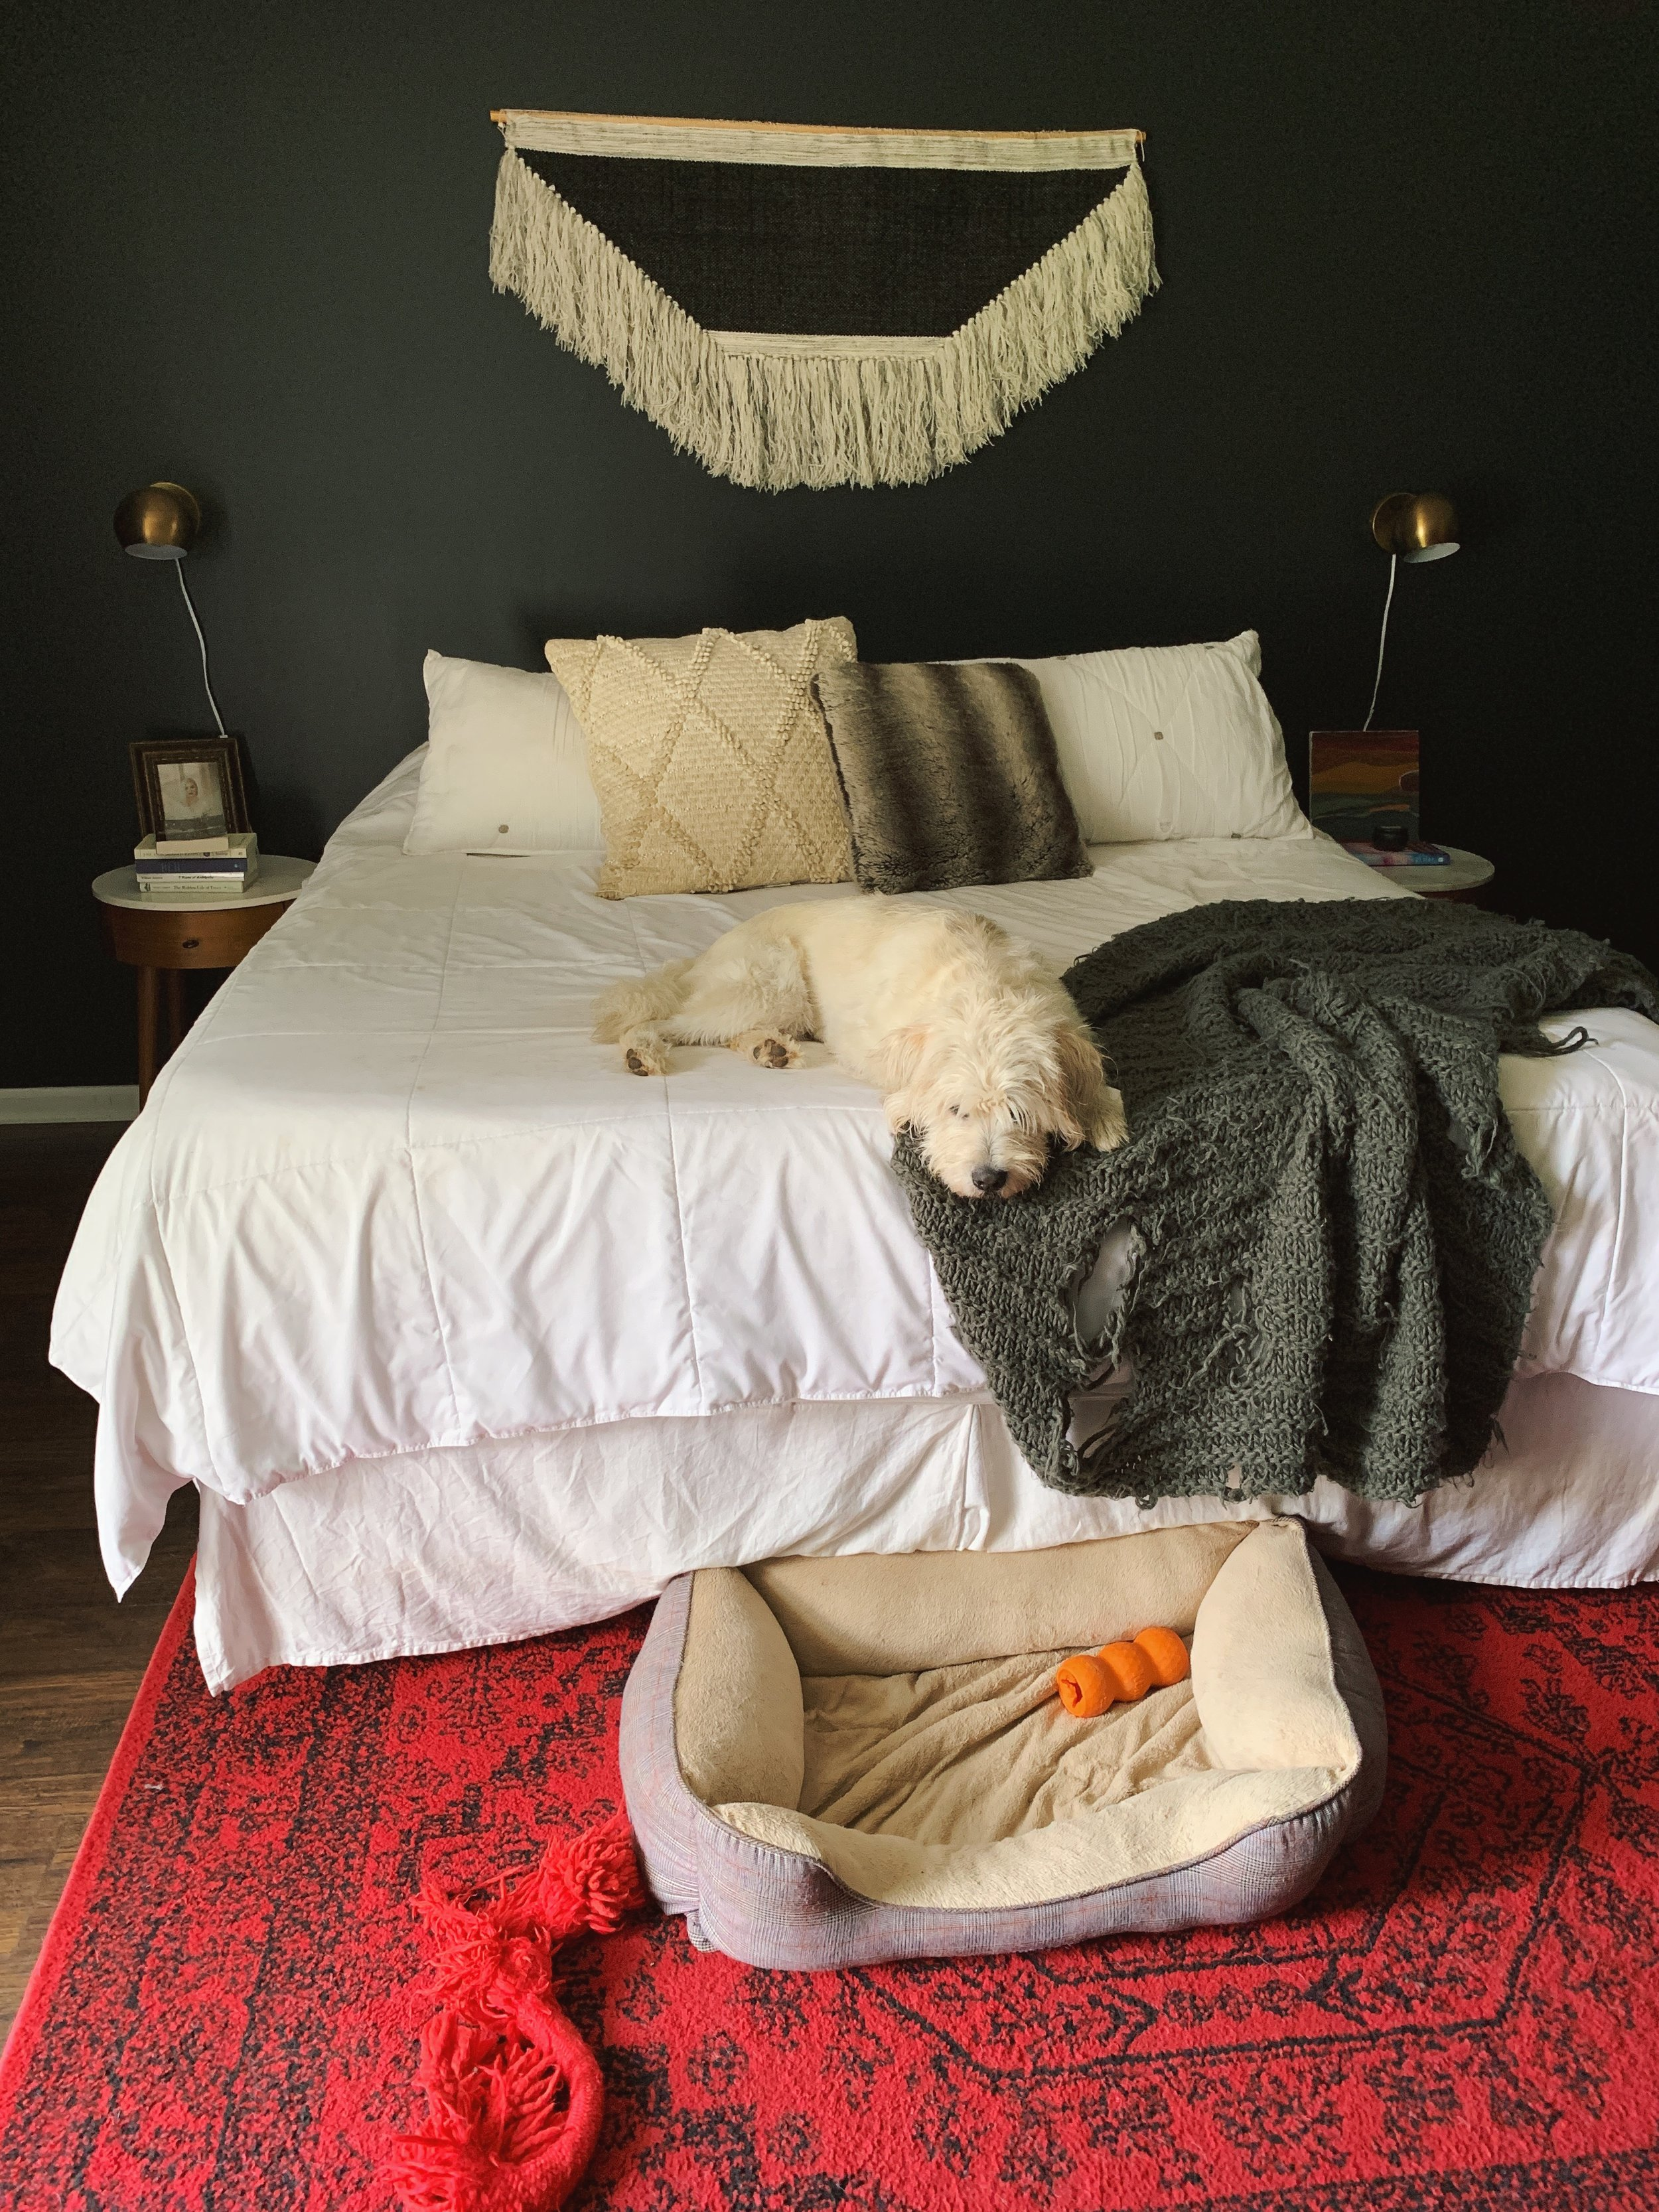 This is what our bedroom looks like on any given day.